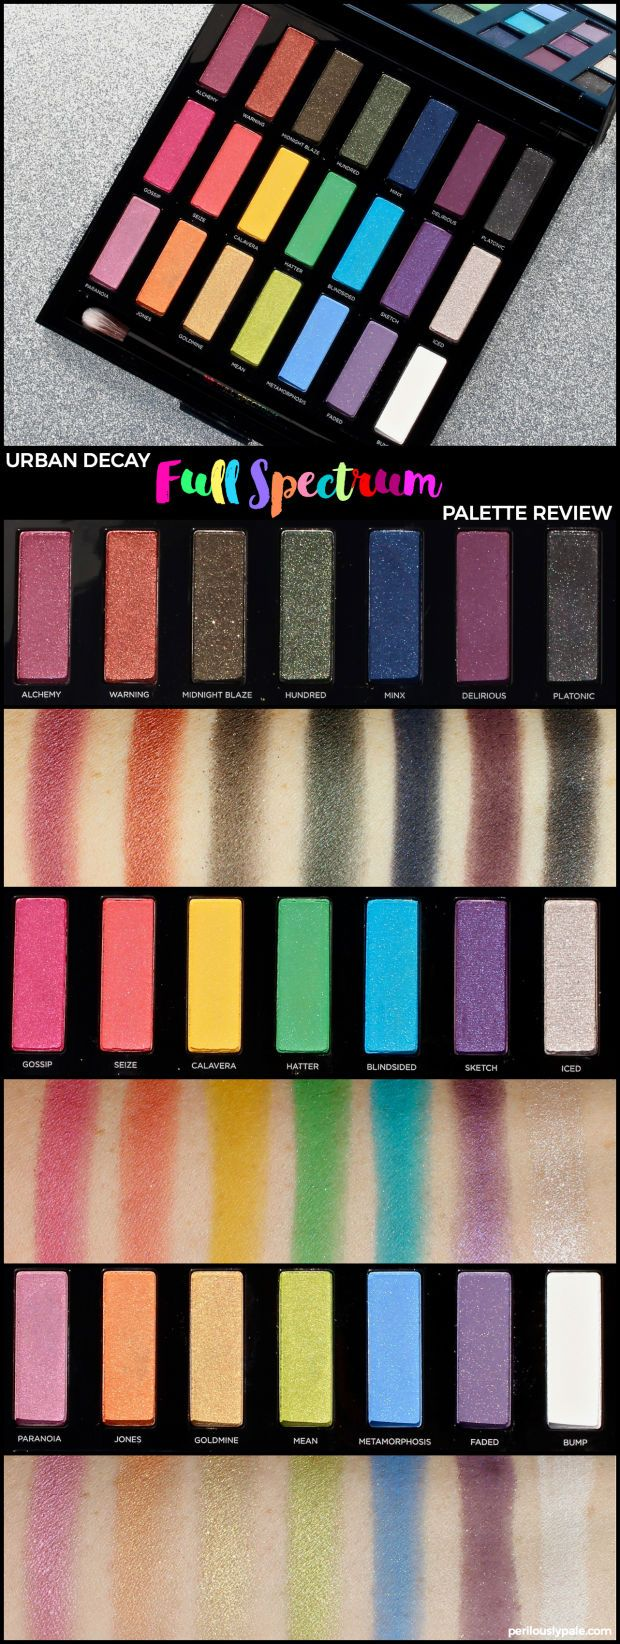 Urban Decay Full Spectrum Palette Review & Swatches